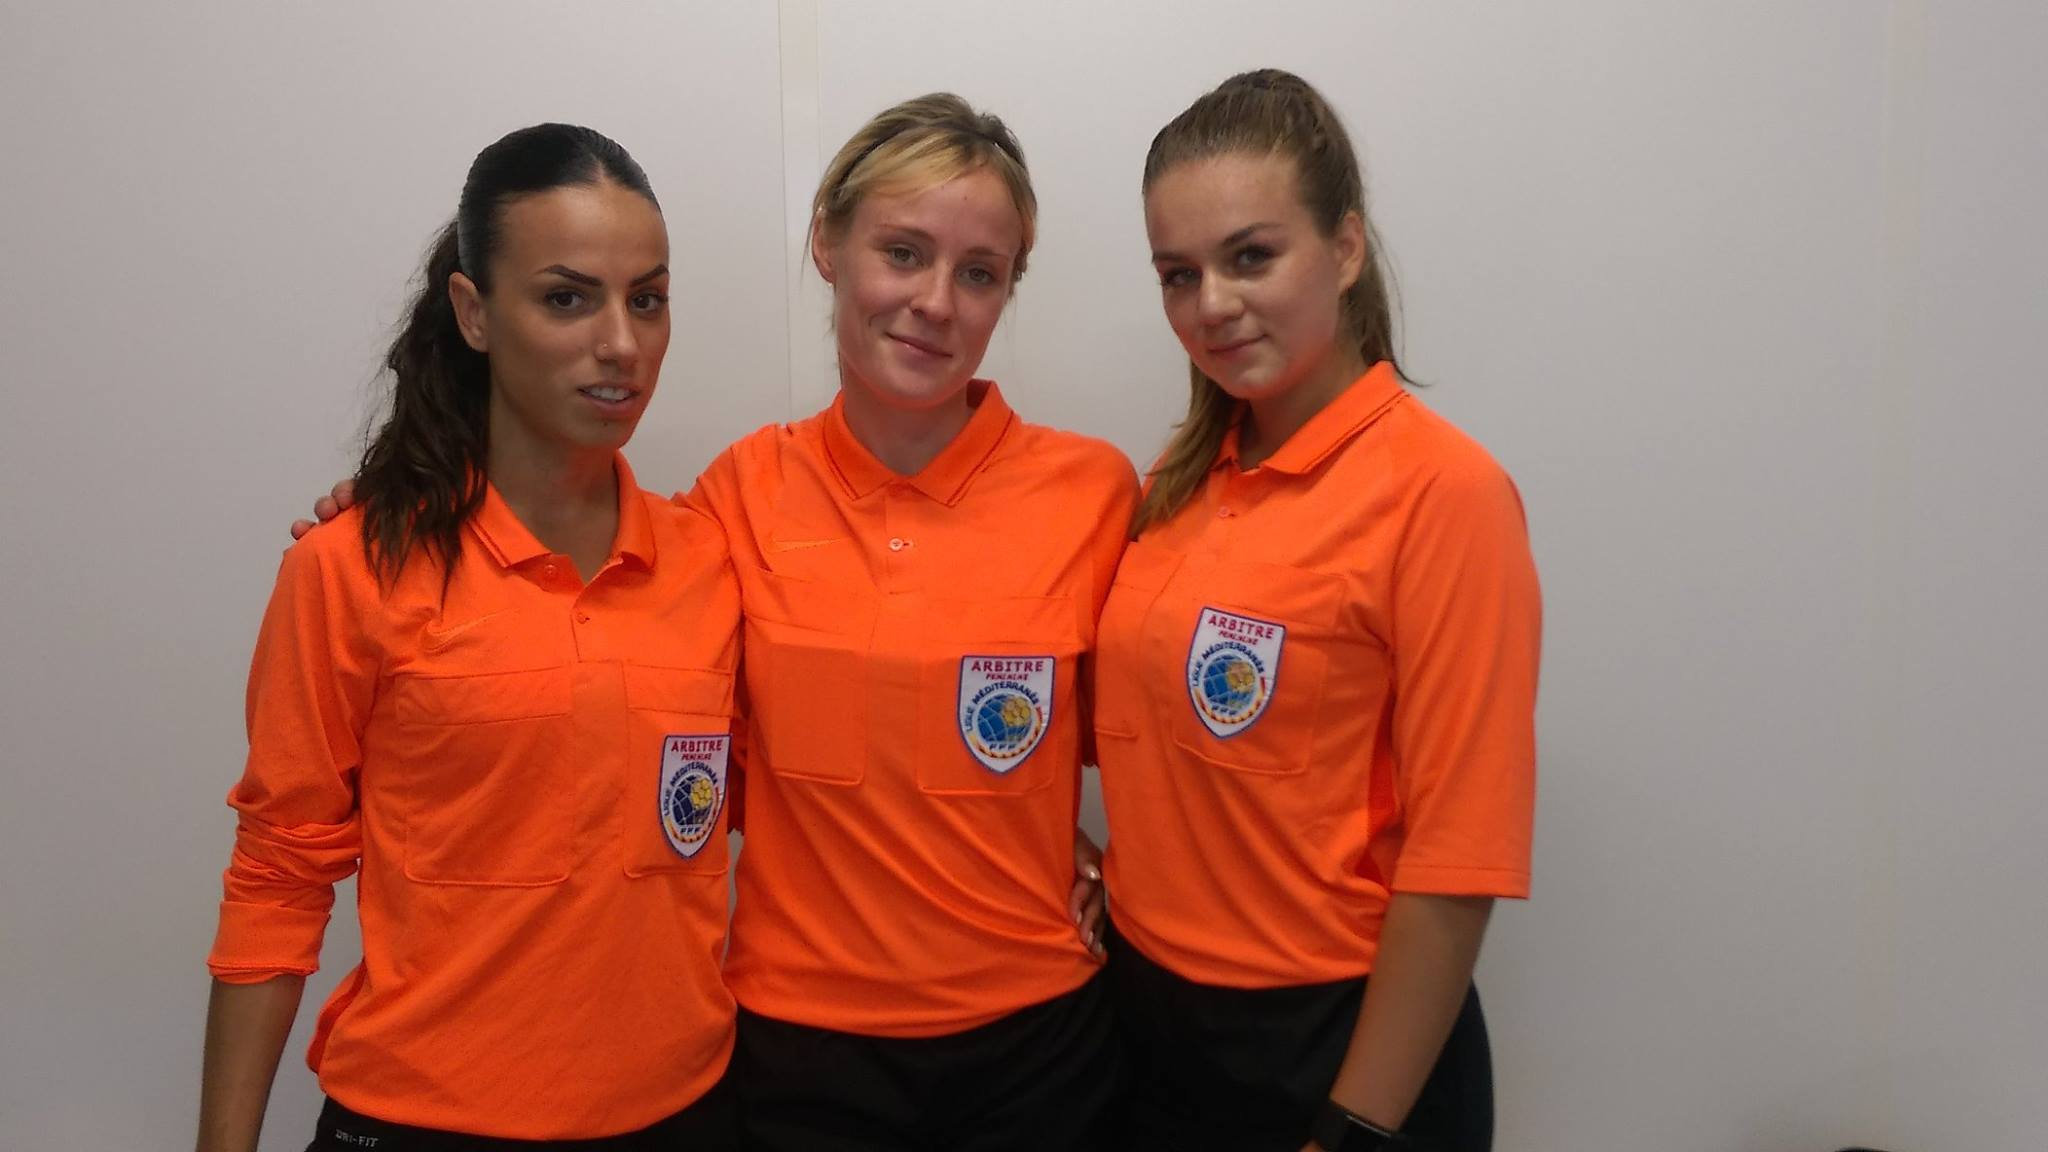 Female referees invited to kick off Ligue 1 men's matches